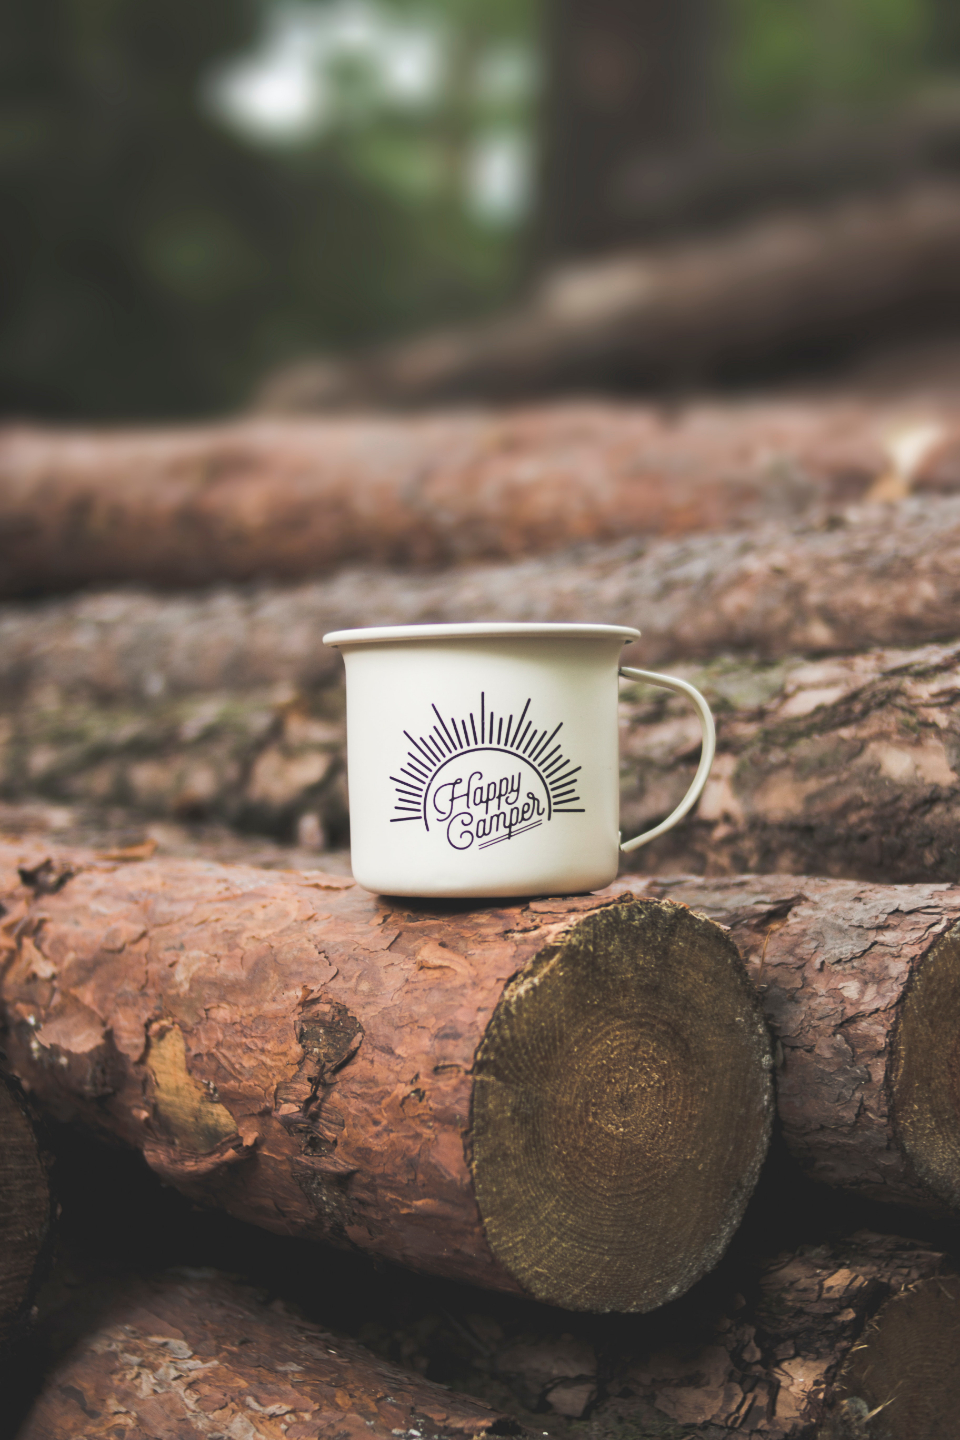 happy camper mug cup drink wood forest log metal steel